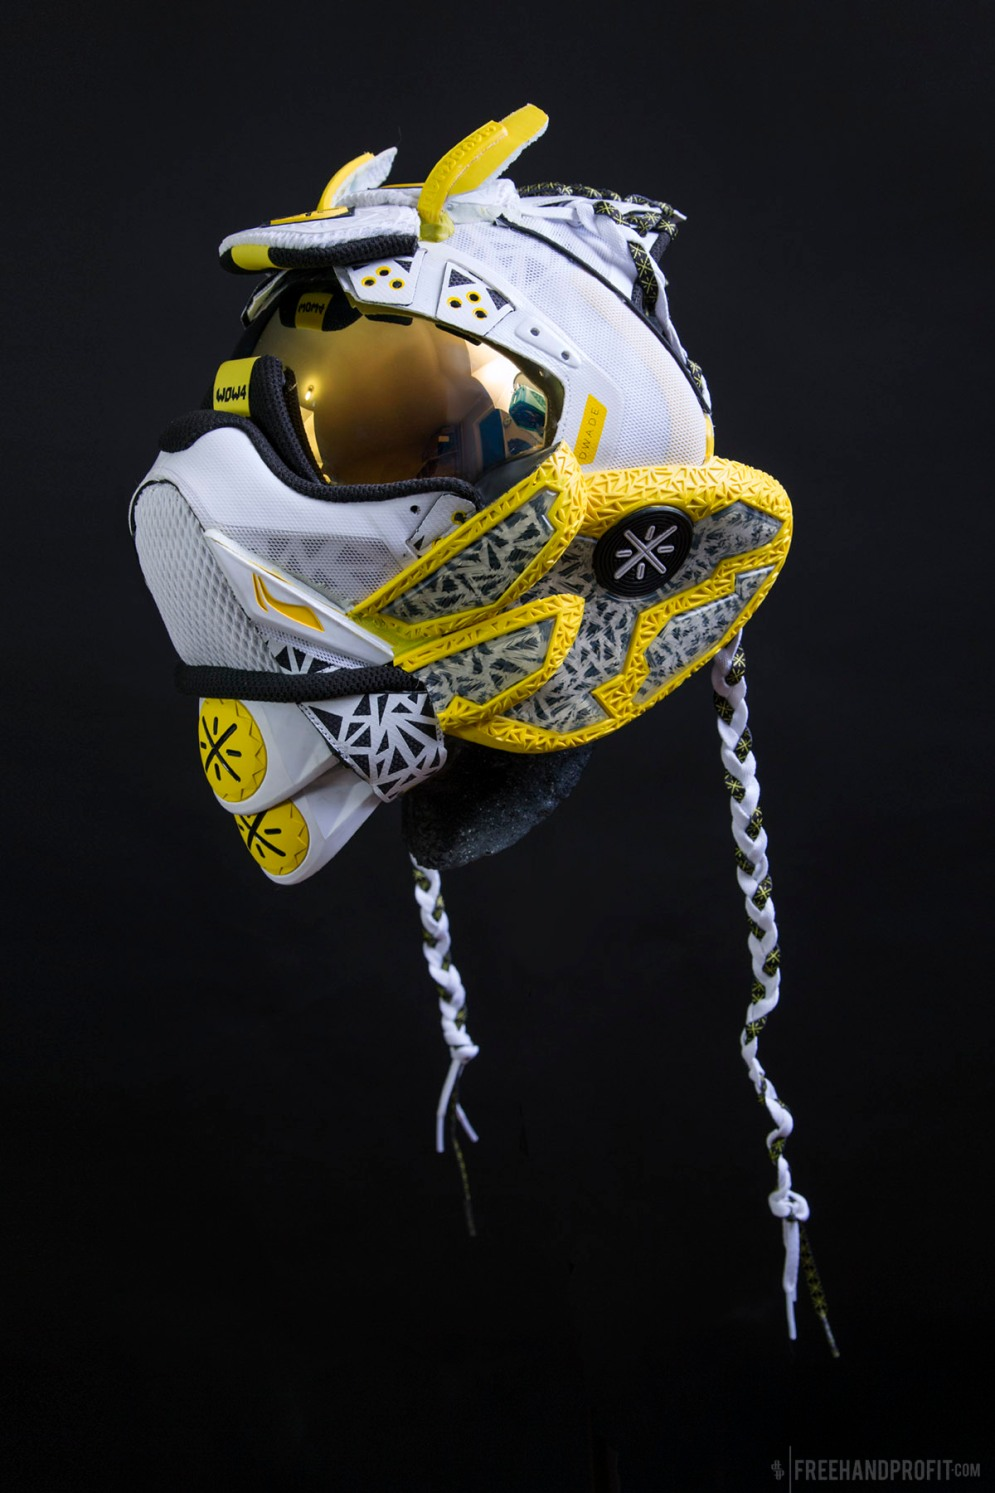 "The 120th sneaker mask created by Freehand Profit. Made from a single pair of ""Overtown"" Way of Wade 4s. Find out more about the work on FREEHANDPROFIT.com."